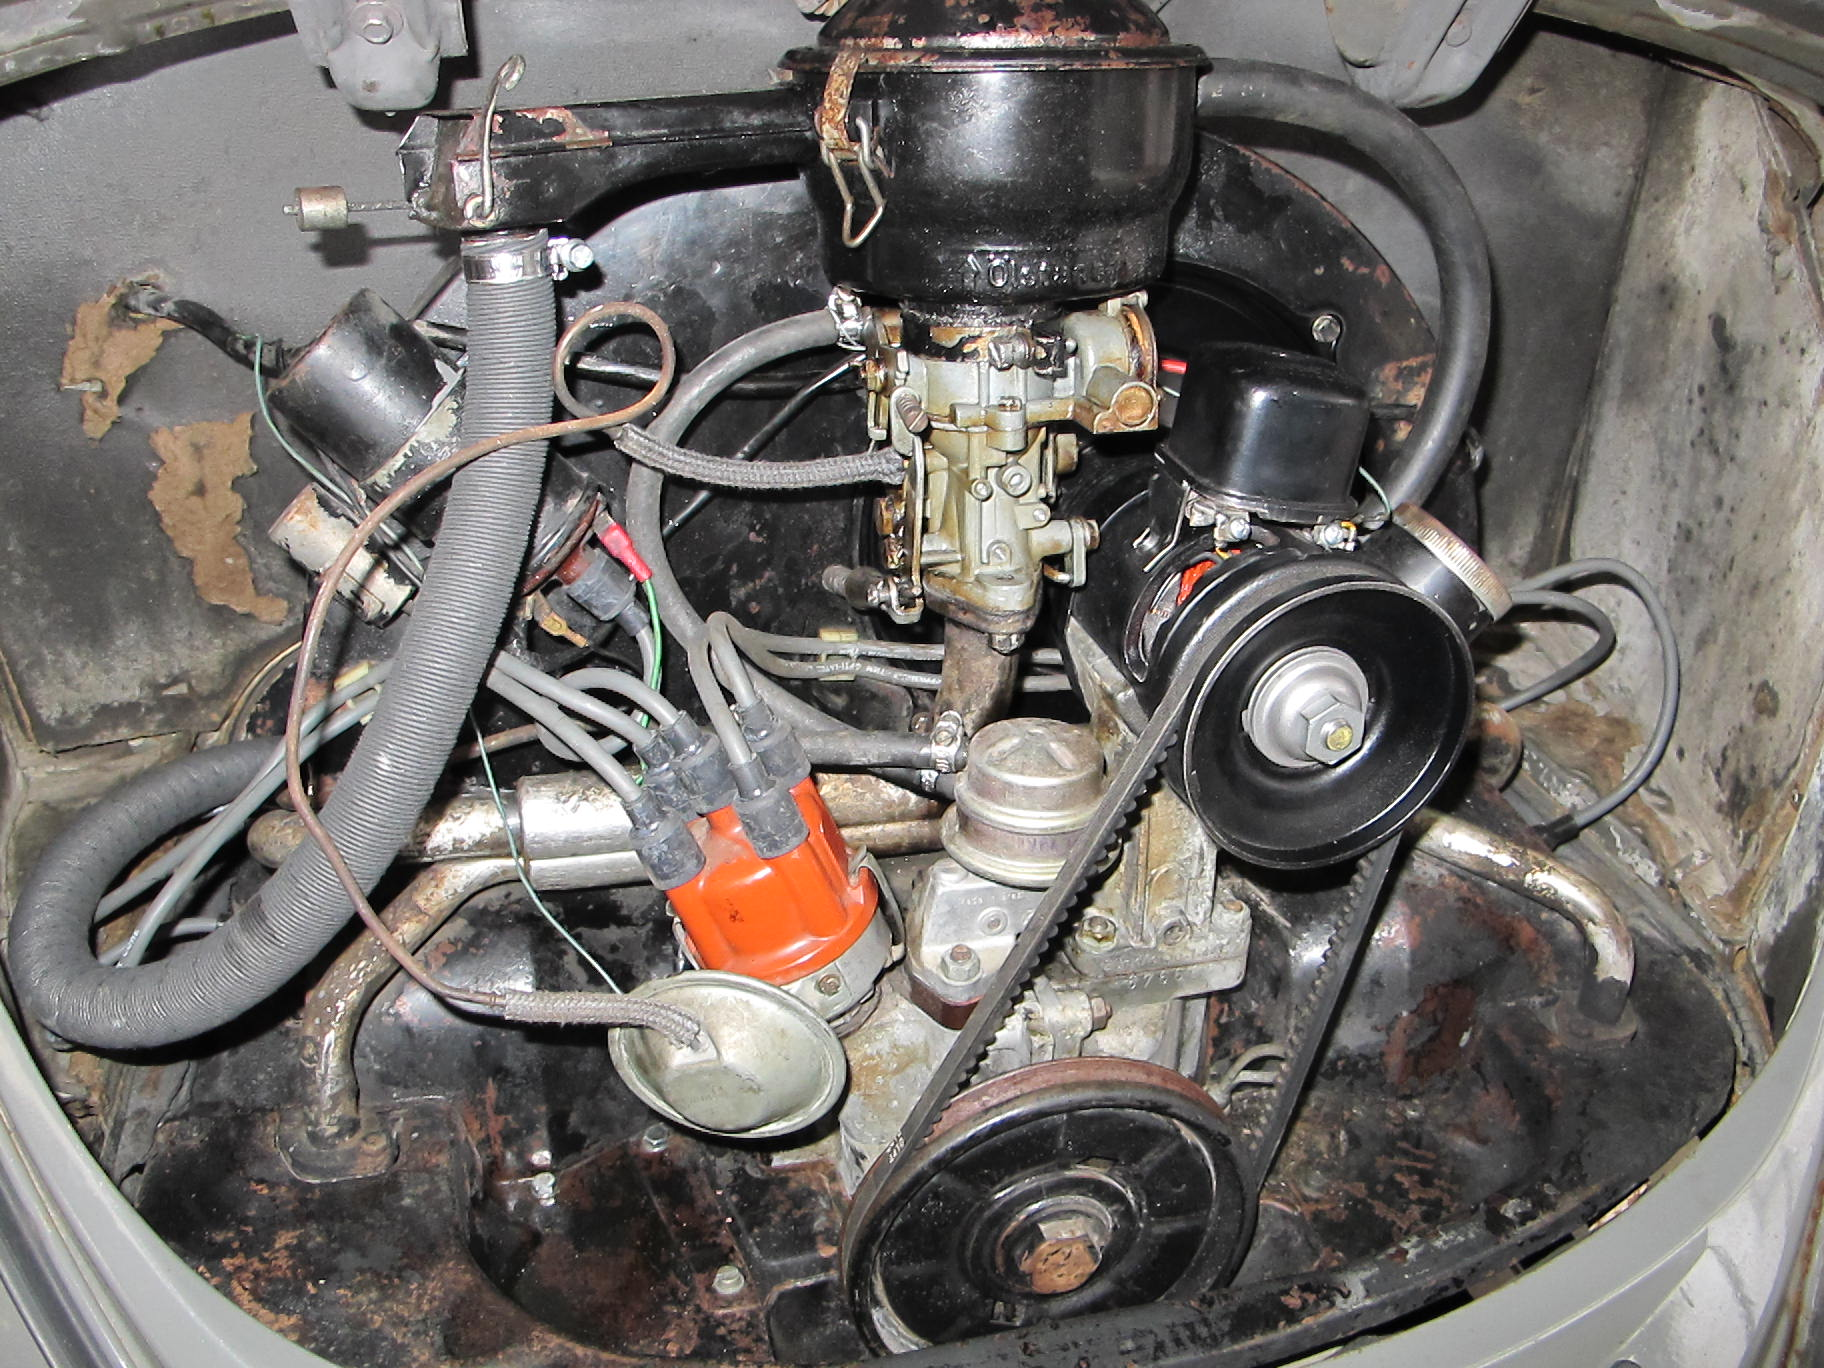 Vw Beetle Ignition Wiring Diagram together with 1958 Corvette Vin Location also 2 also Fuse Box Wiring Diagram For 71 Vw also Shop by Vehicle Beetle Products Beetle Body Products Sunroof Parts. on vw bug diagram